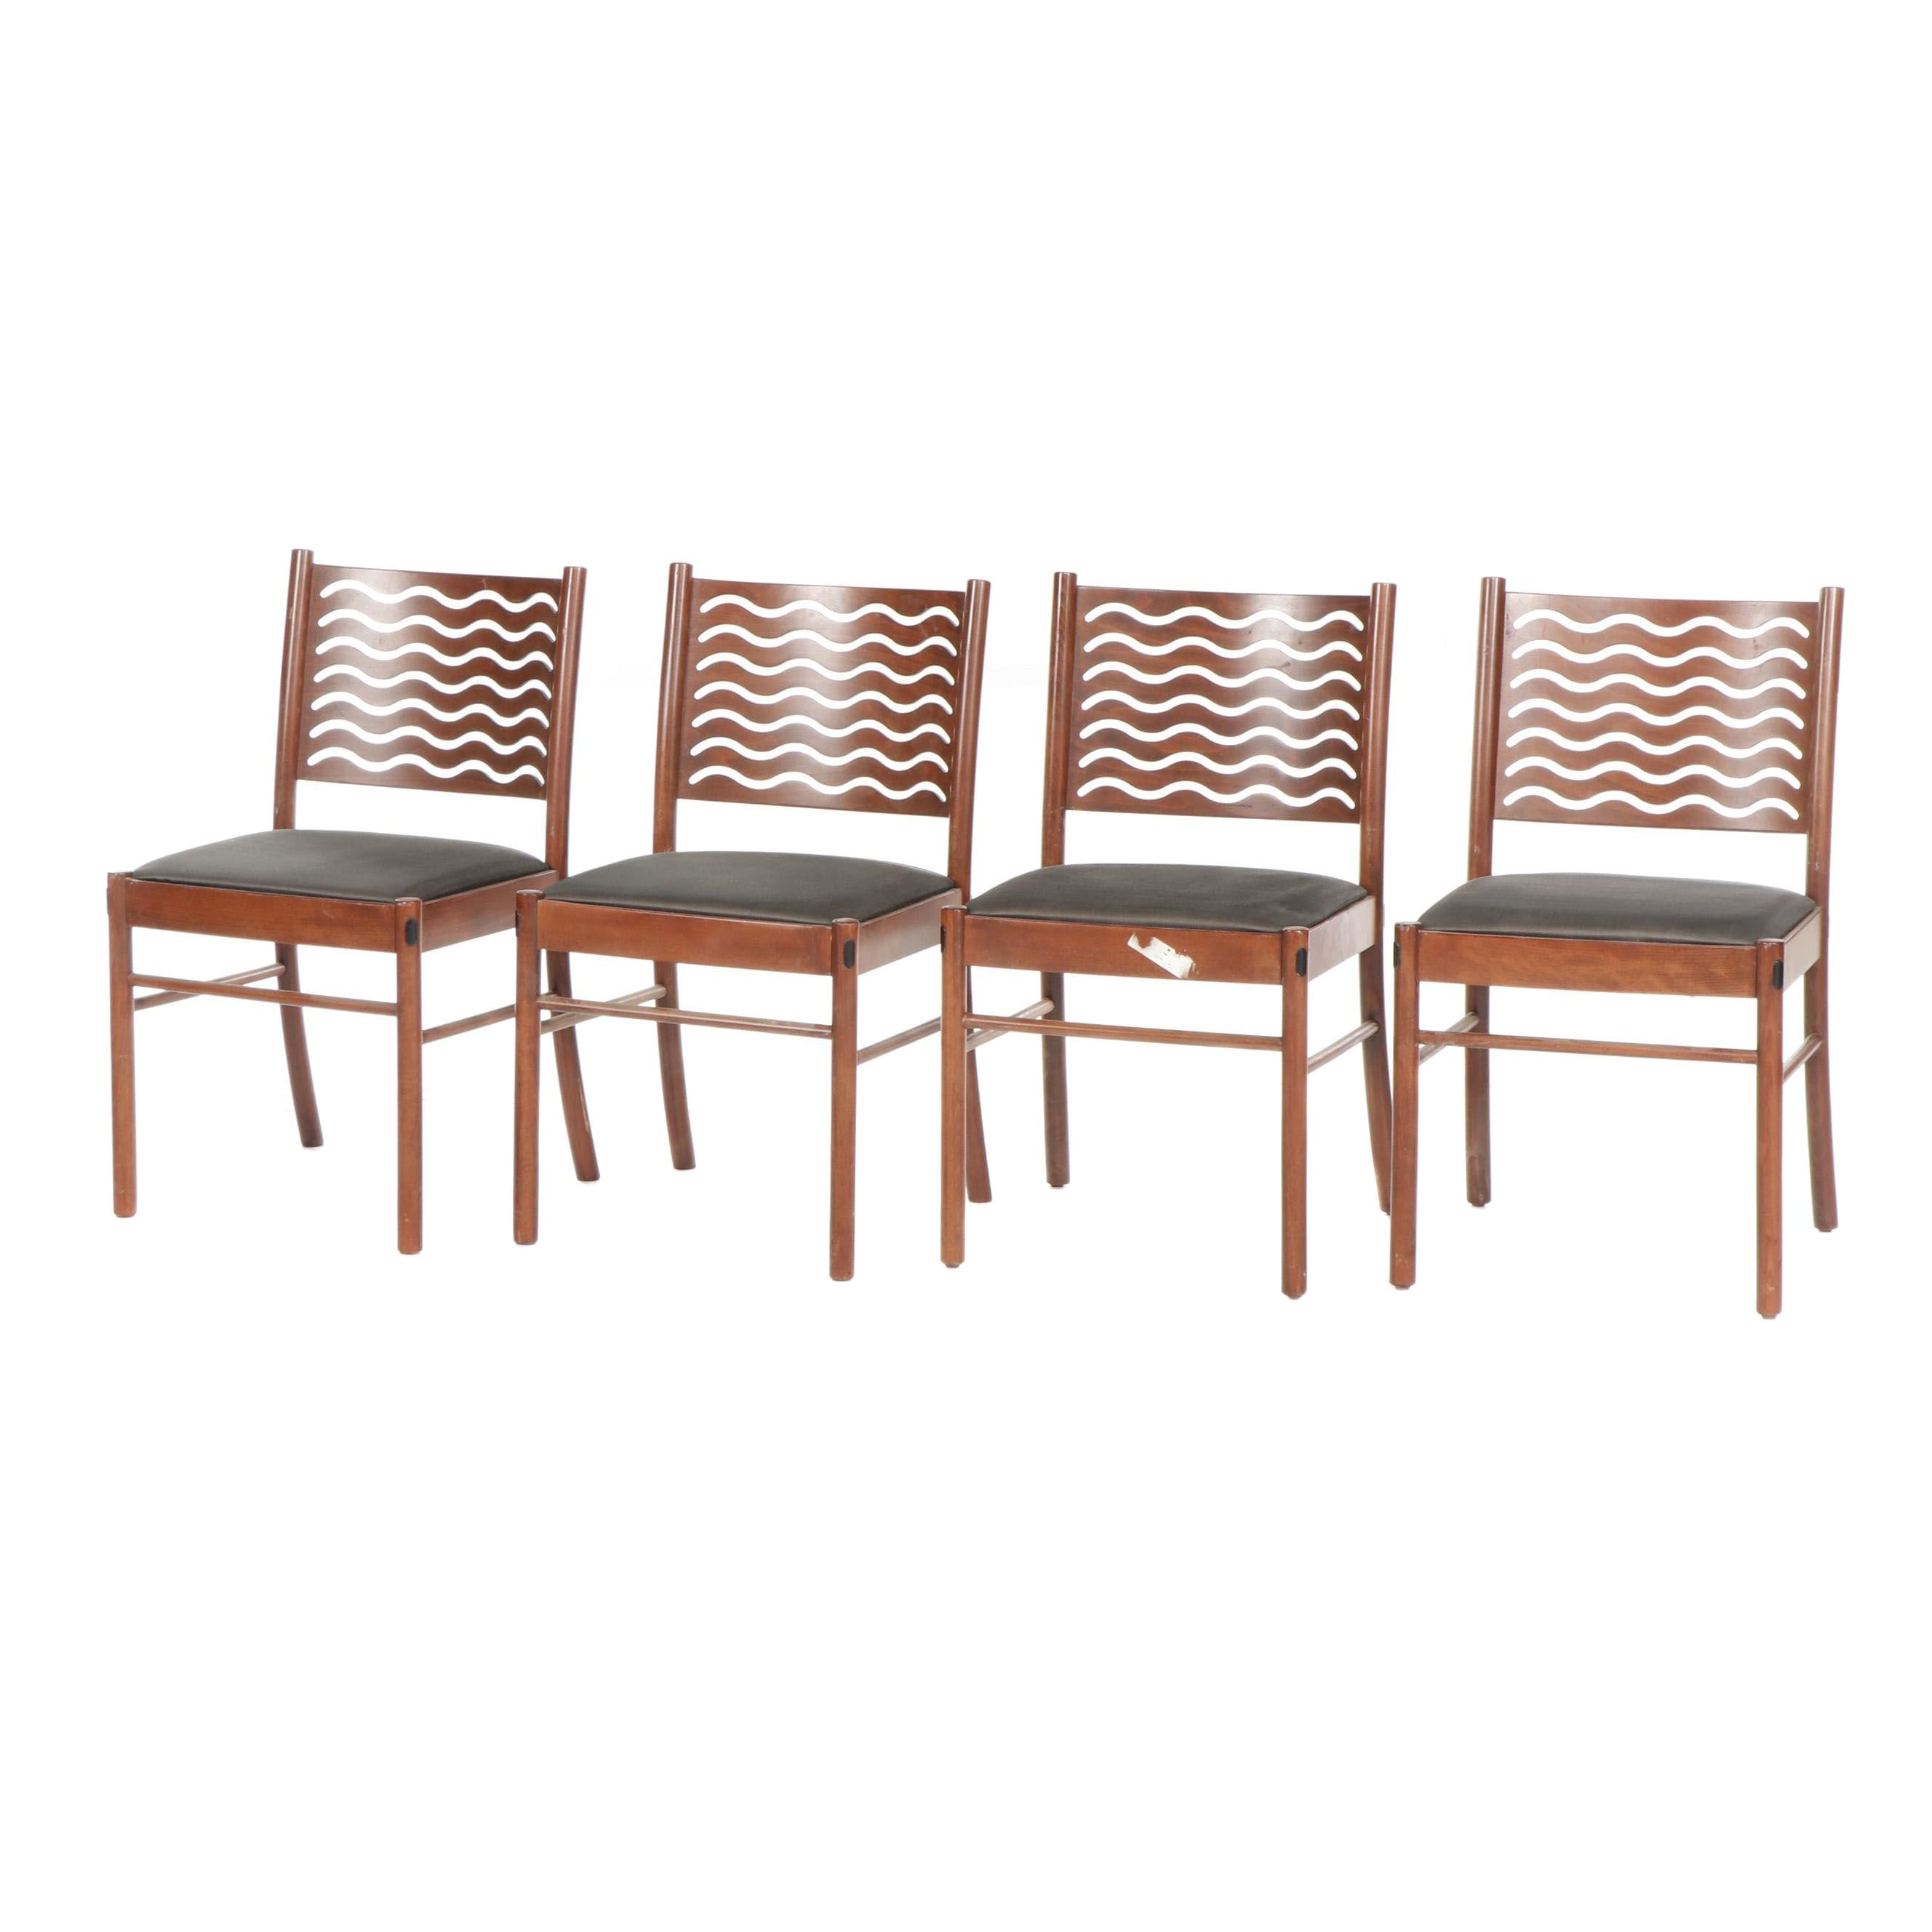 Modern Style Atelier International Wooden Side Chairs with Wave Pierced Back